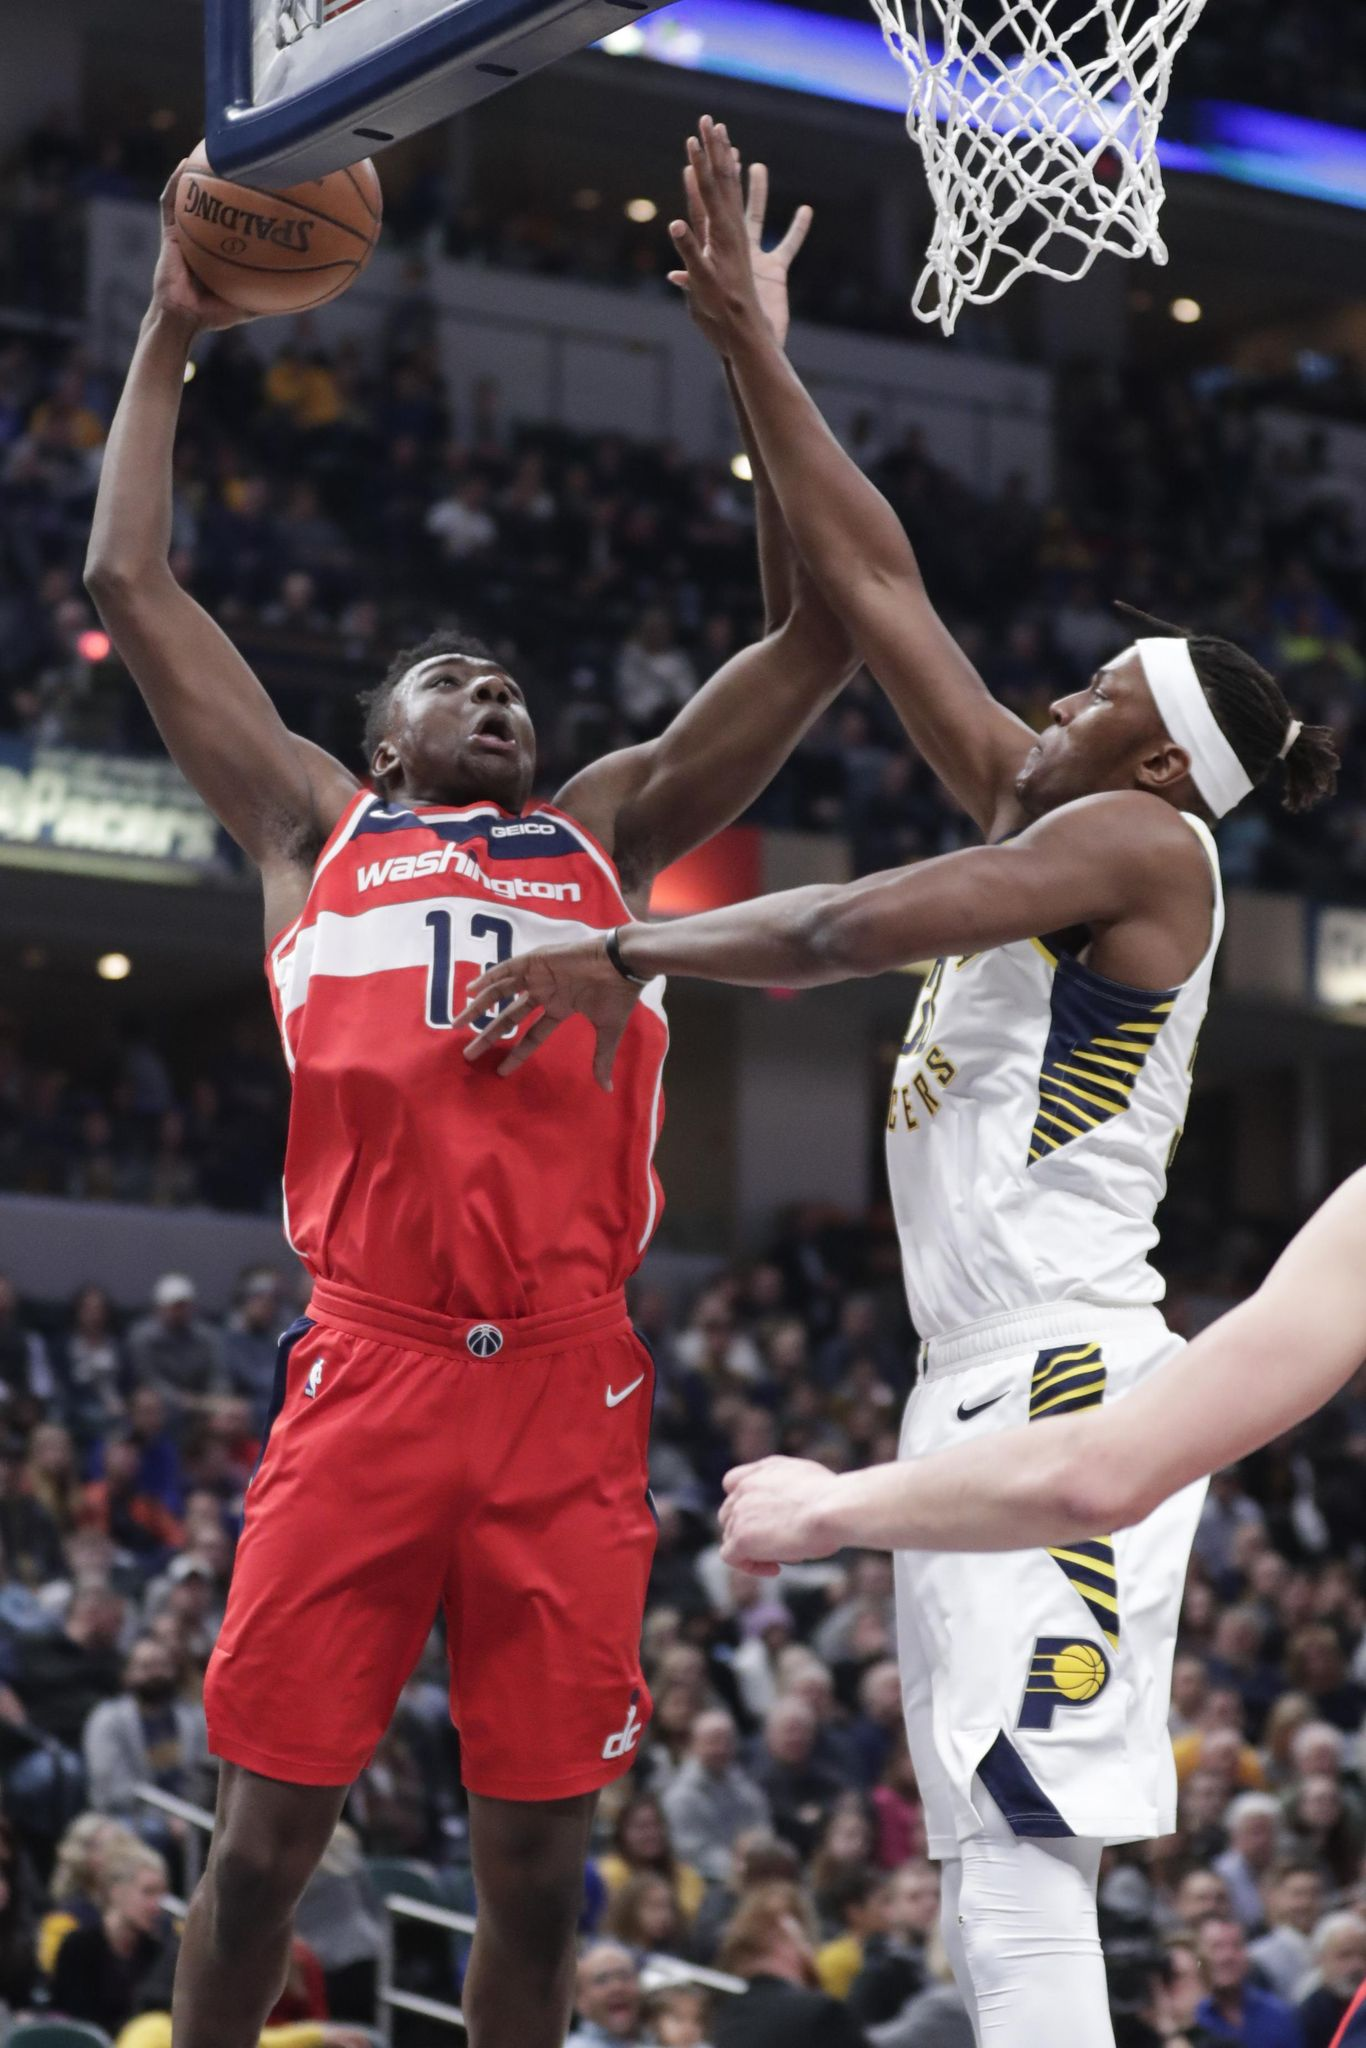 Wizards_pacers_basketball_59630_s1366x2048